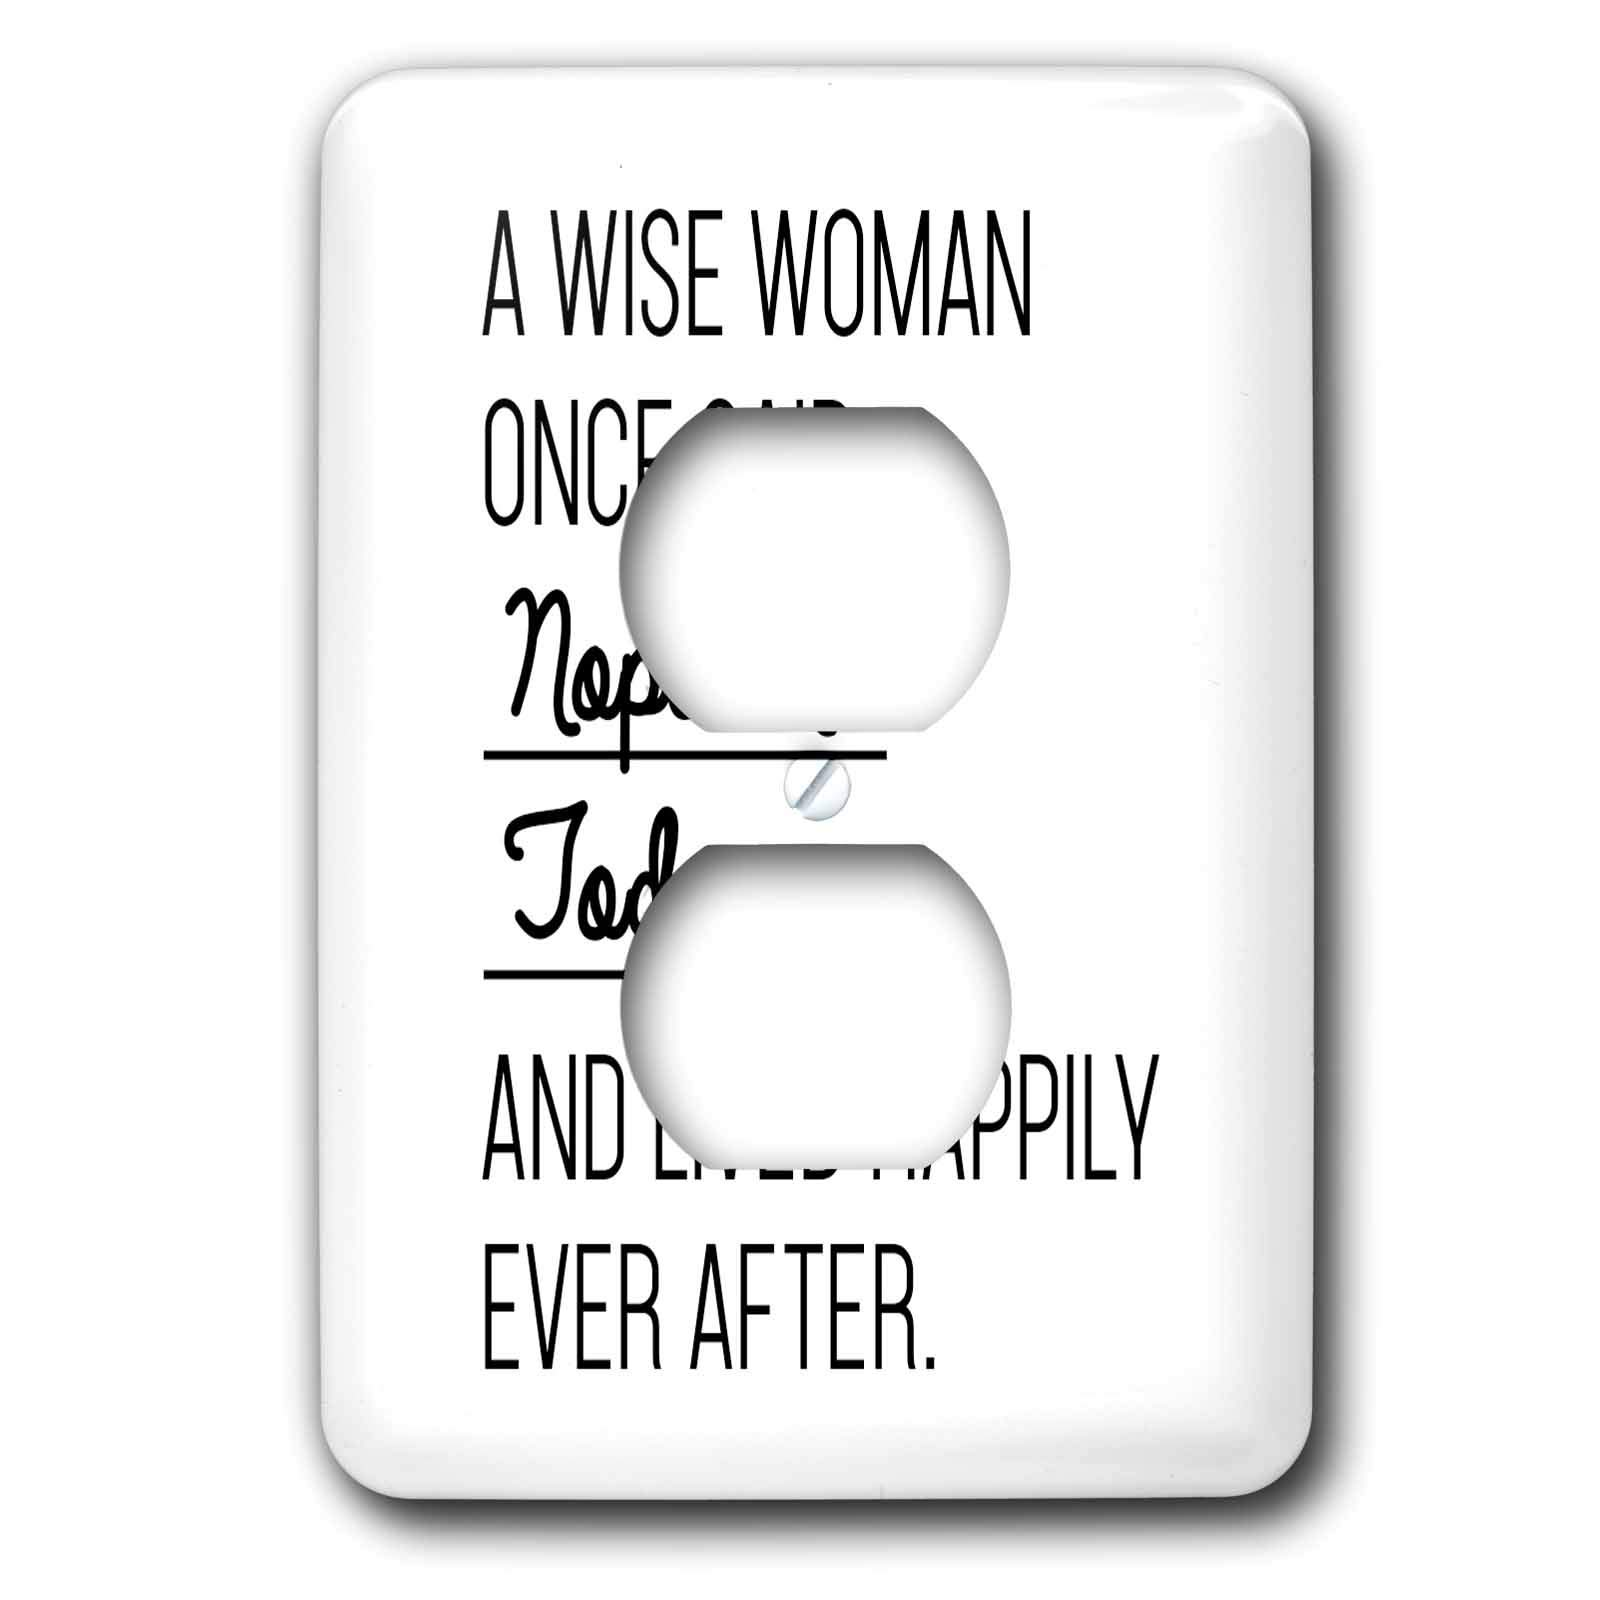 3dRose Tory Anne Collections Quotes - A Wise Woman Once Said Nope Not Today And Lived Happily Ever After - Light Switch Covers - 2 plug outlet cover (lsp_288612_6)